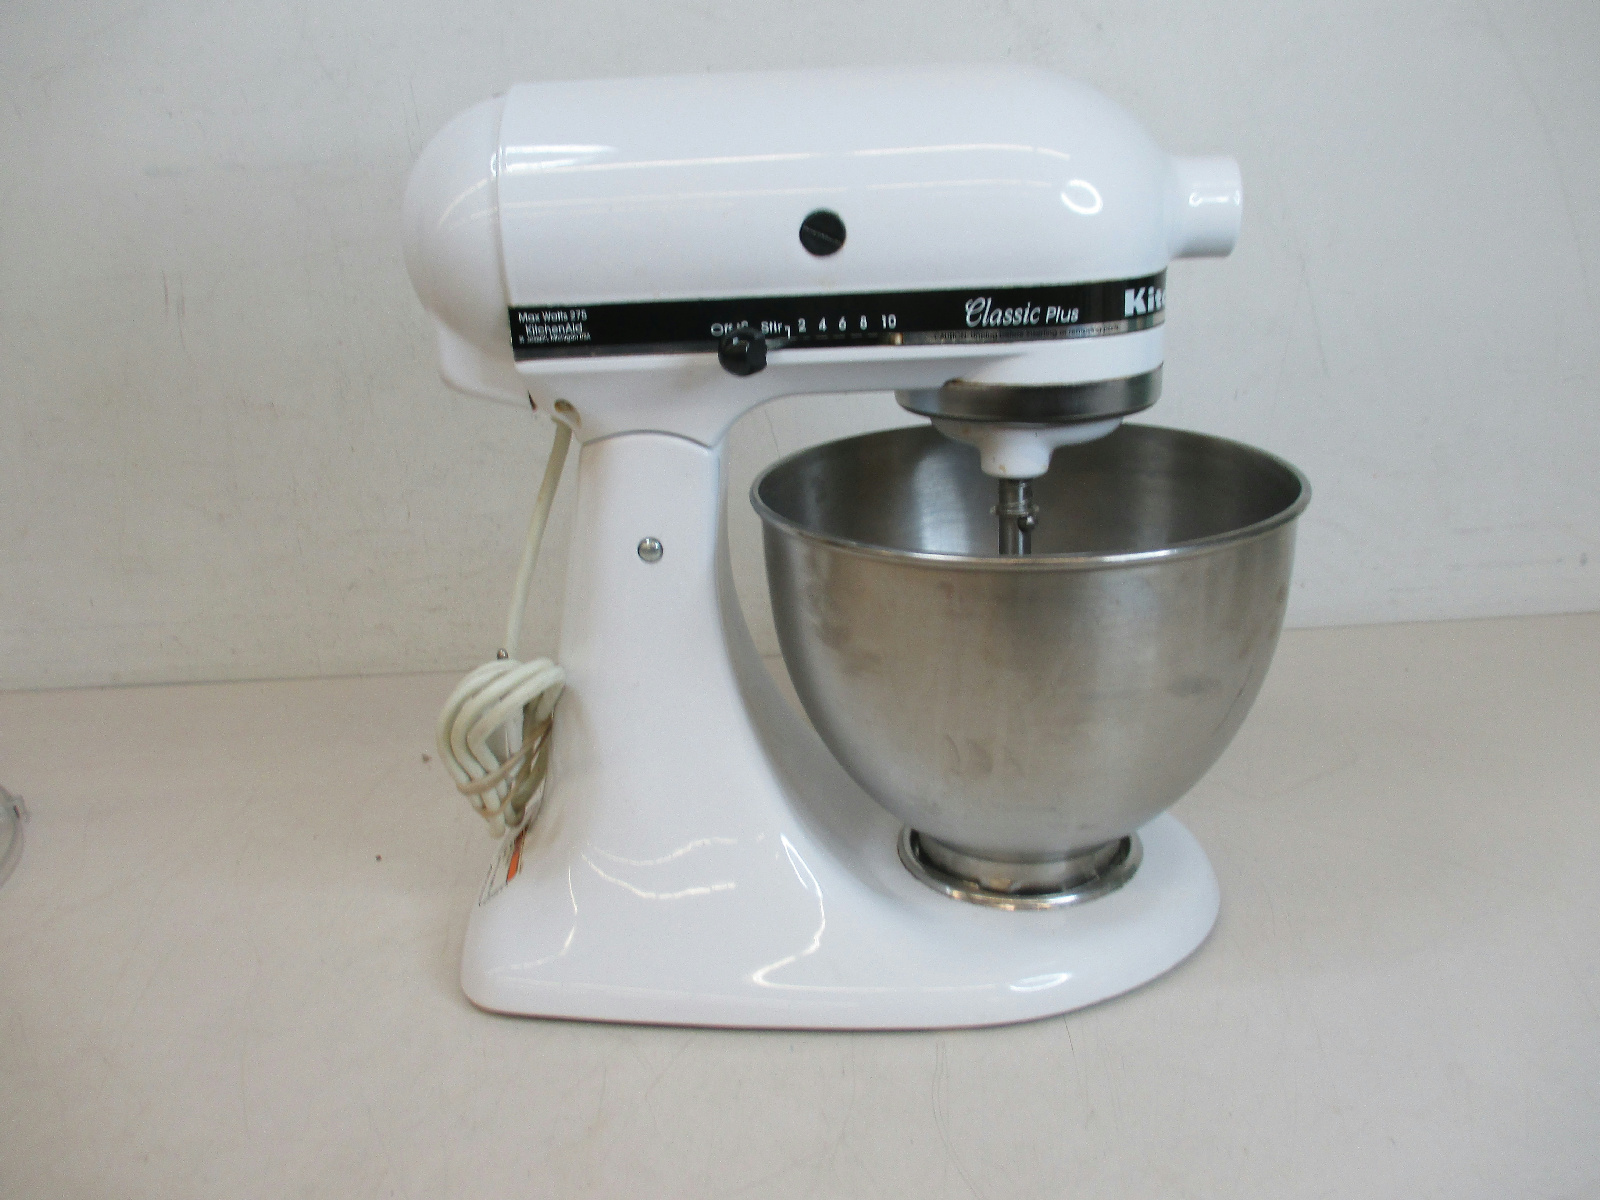 kitchenaid classic plus model ksm75wh 4 5 qt stand mixer bundle tested ebay. Black Bedroom Furniture Sets. Home Design Ideas